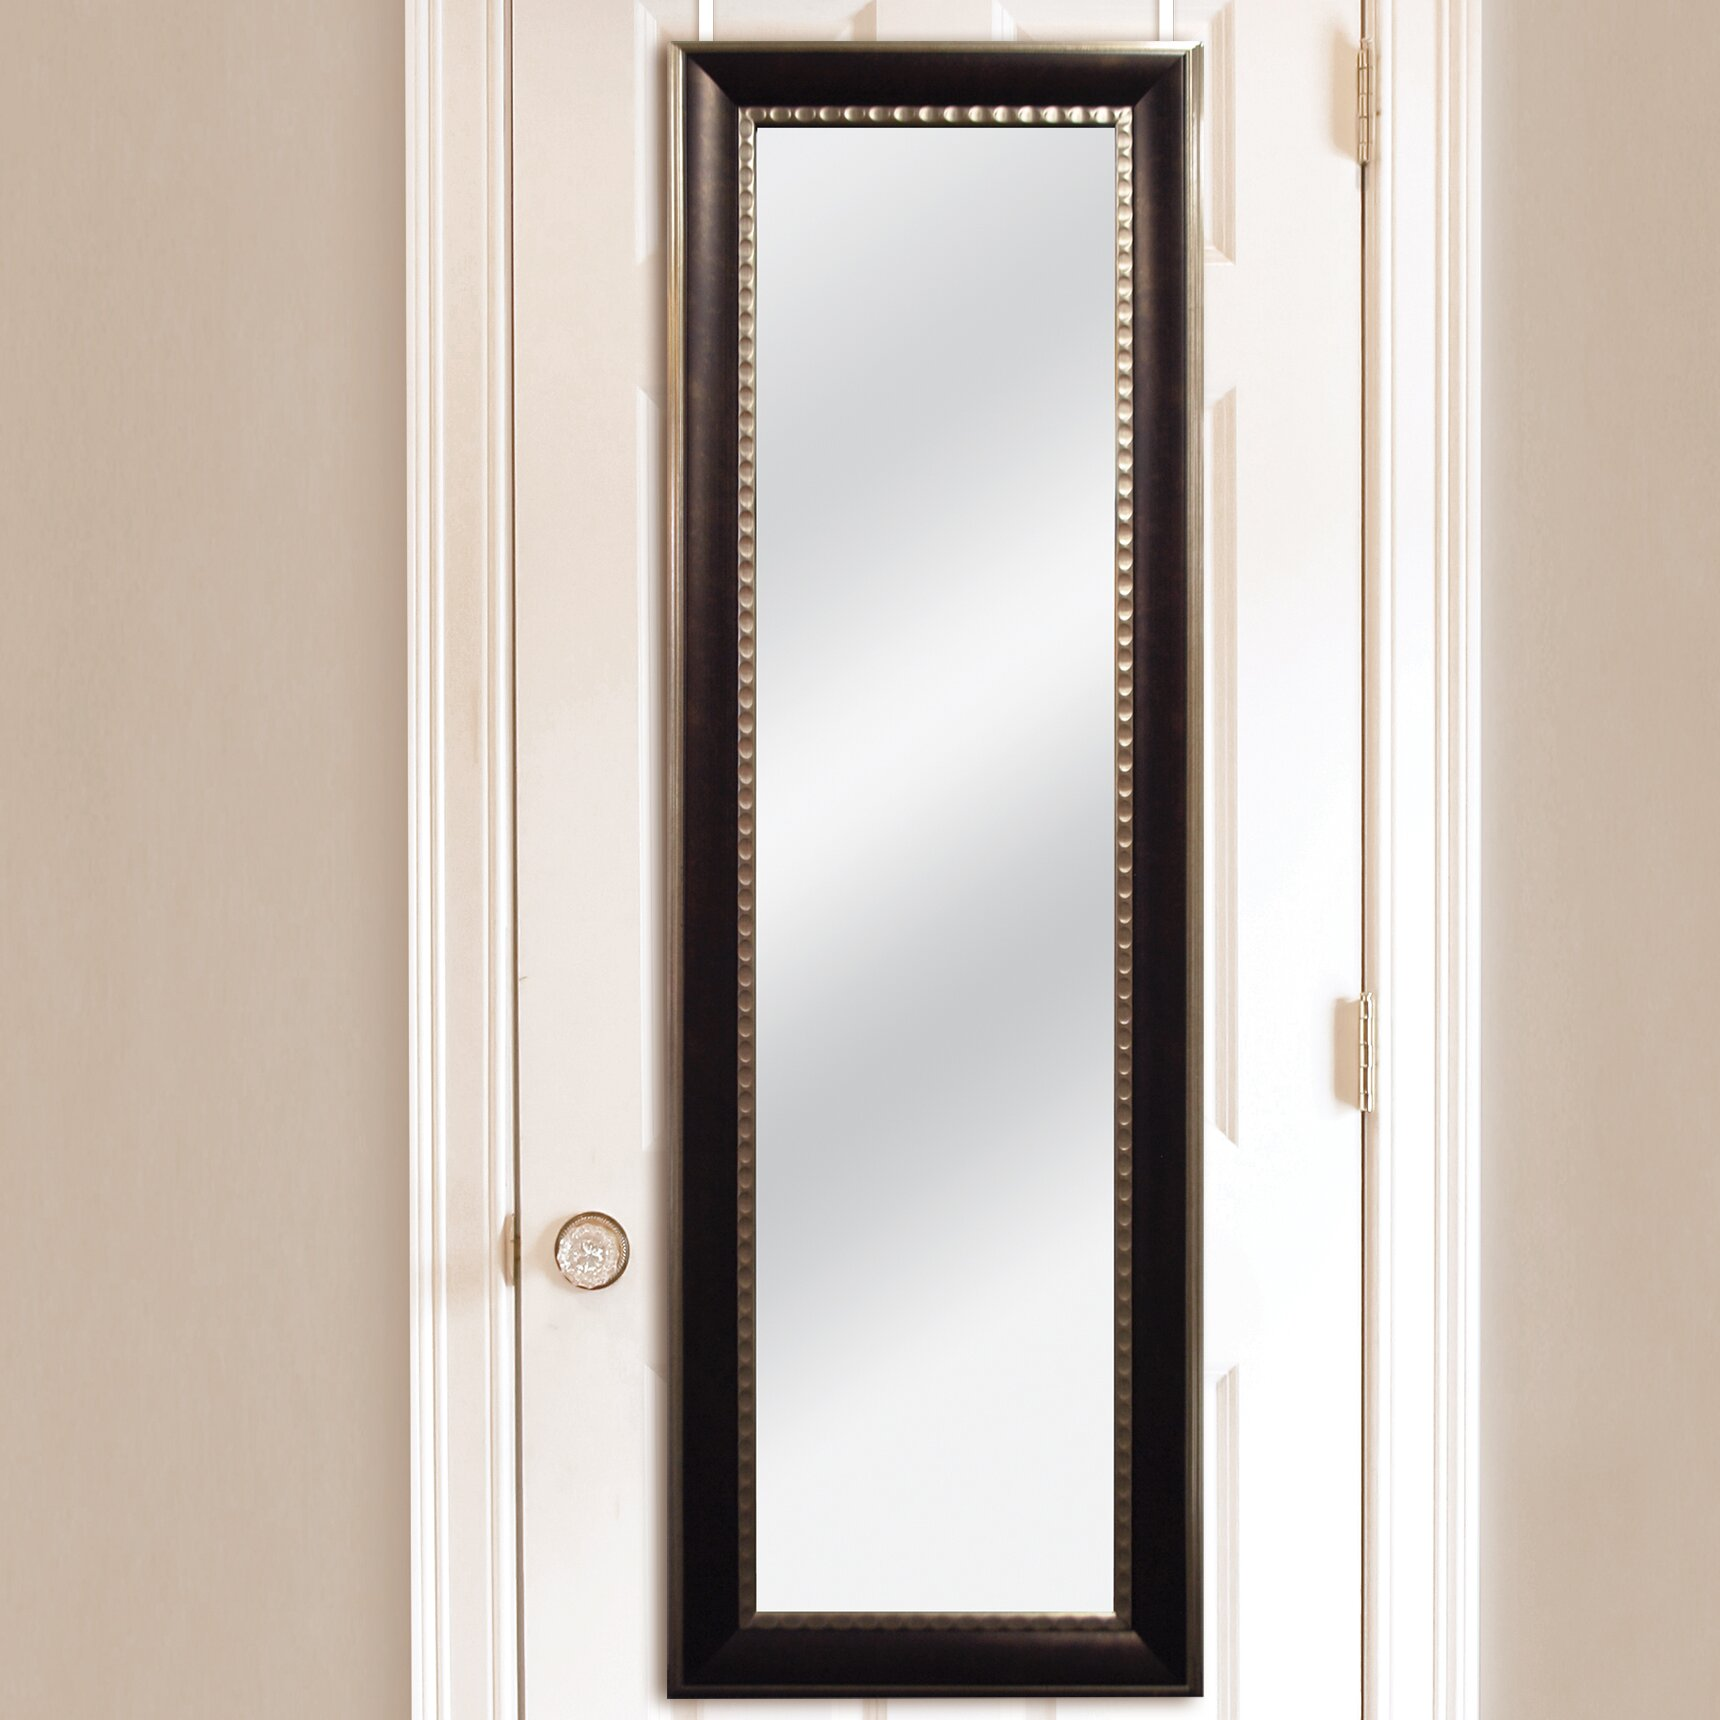 mcsindustries two tone over the door mirror reviews. Black Bedroom Furniture Sets. Home Design Ideas